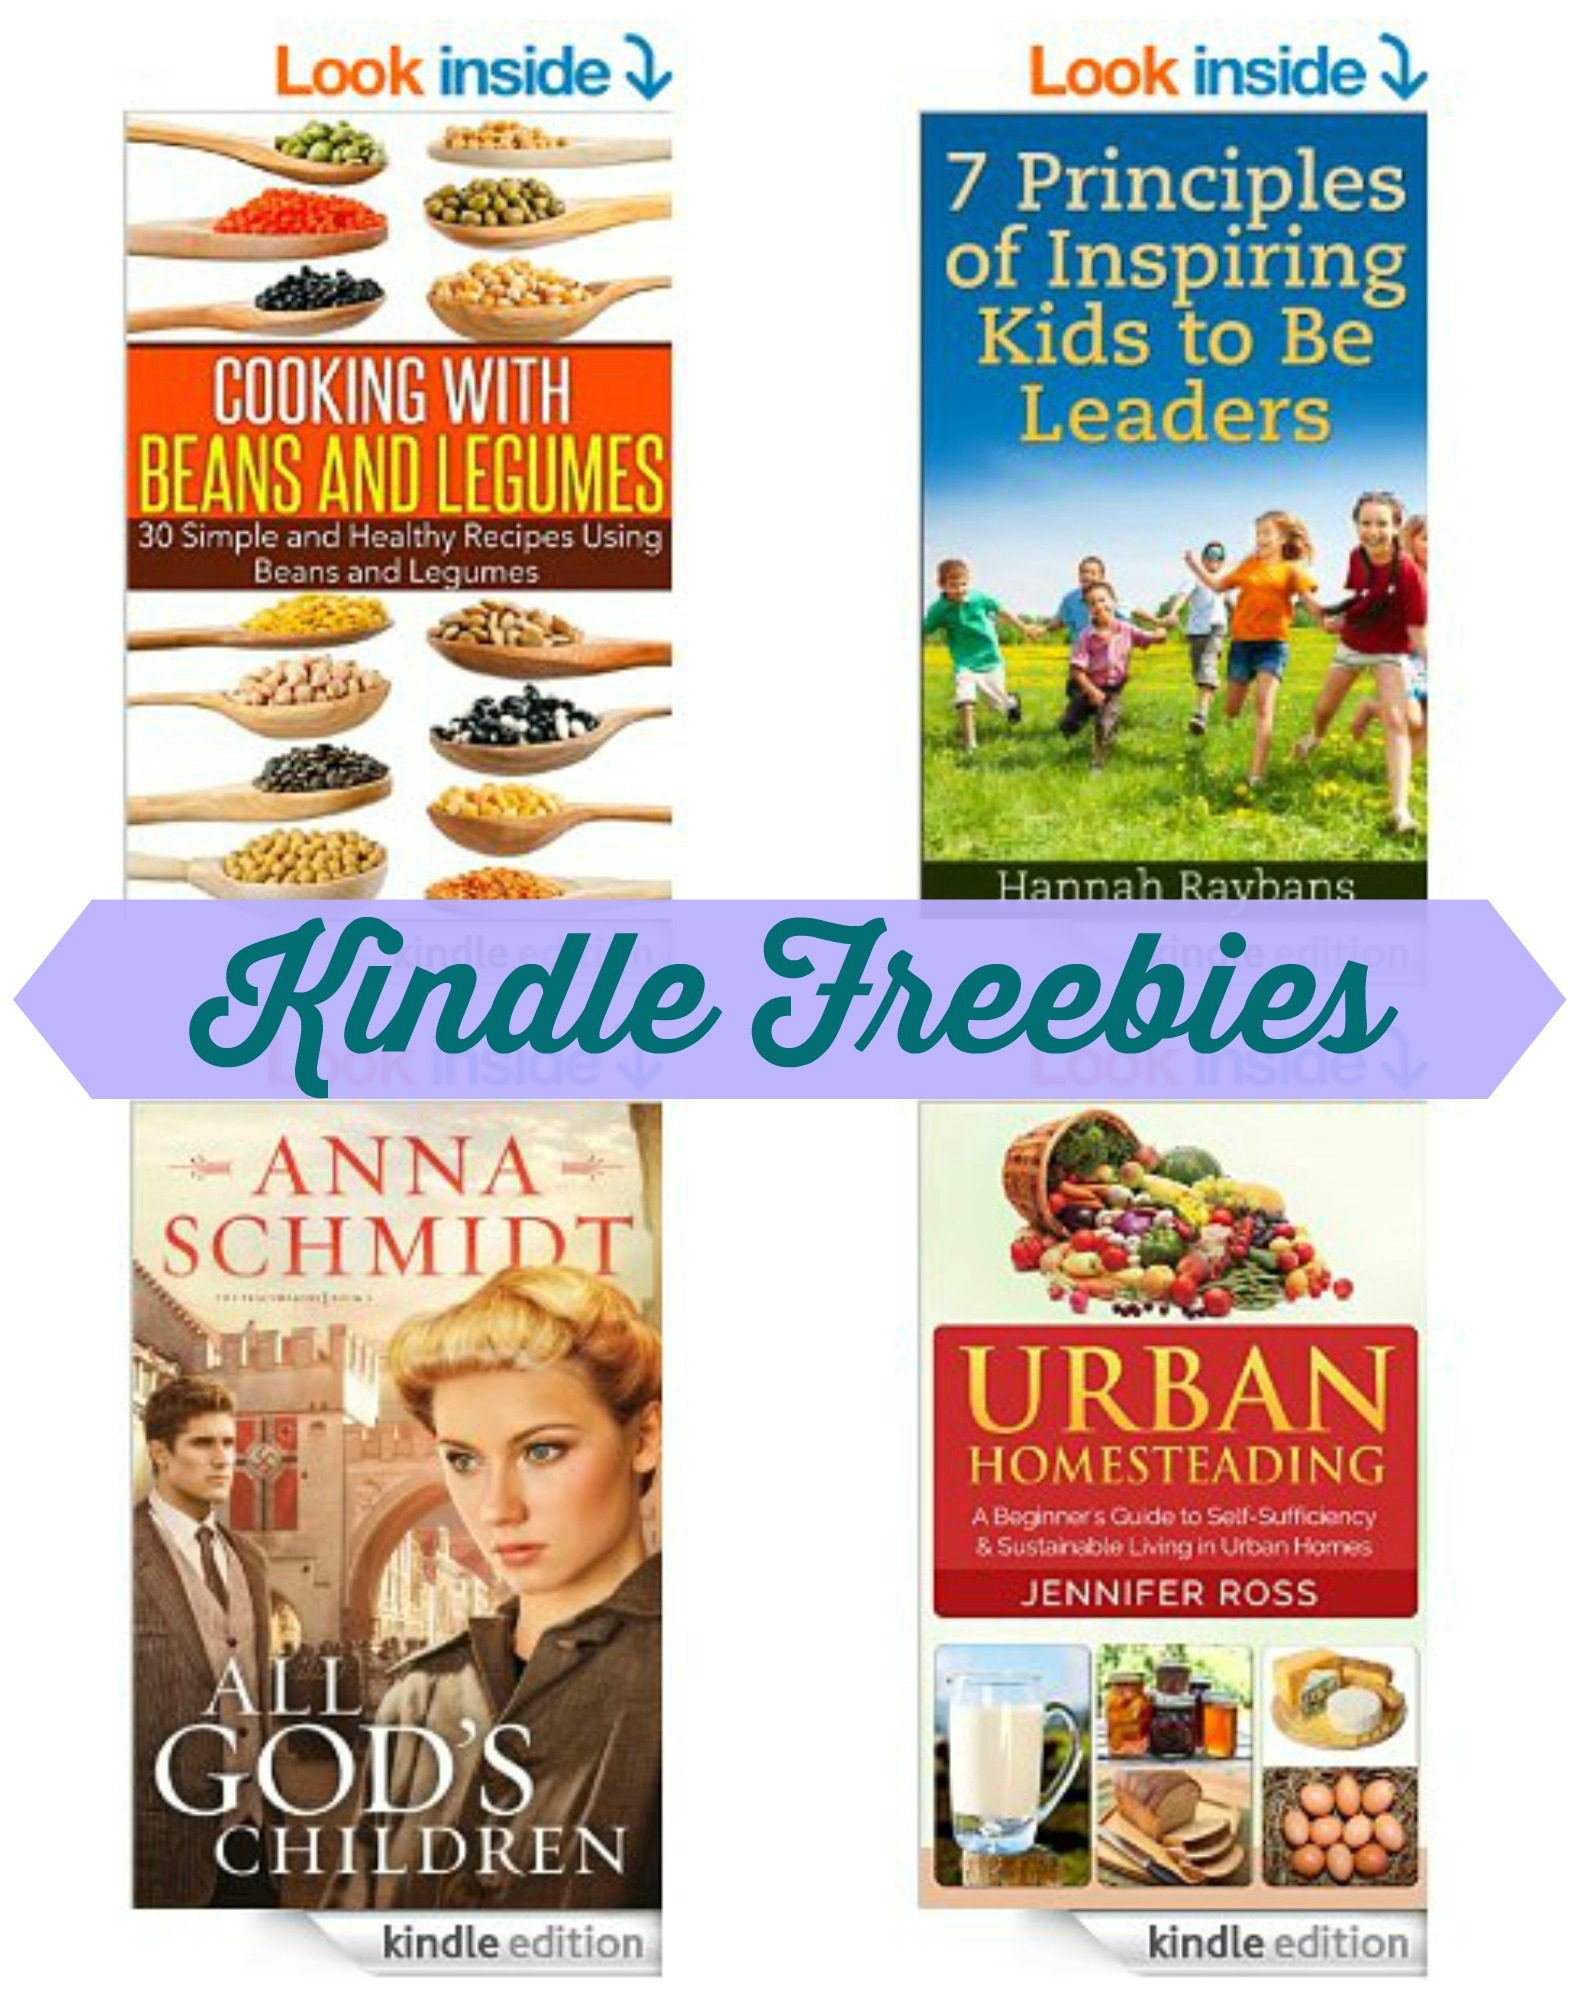 Best Educational Spanish Apps for Kindle Fire